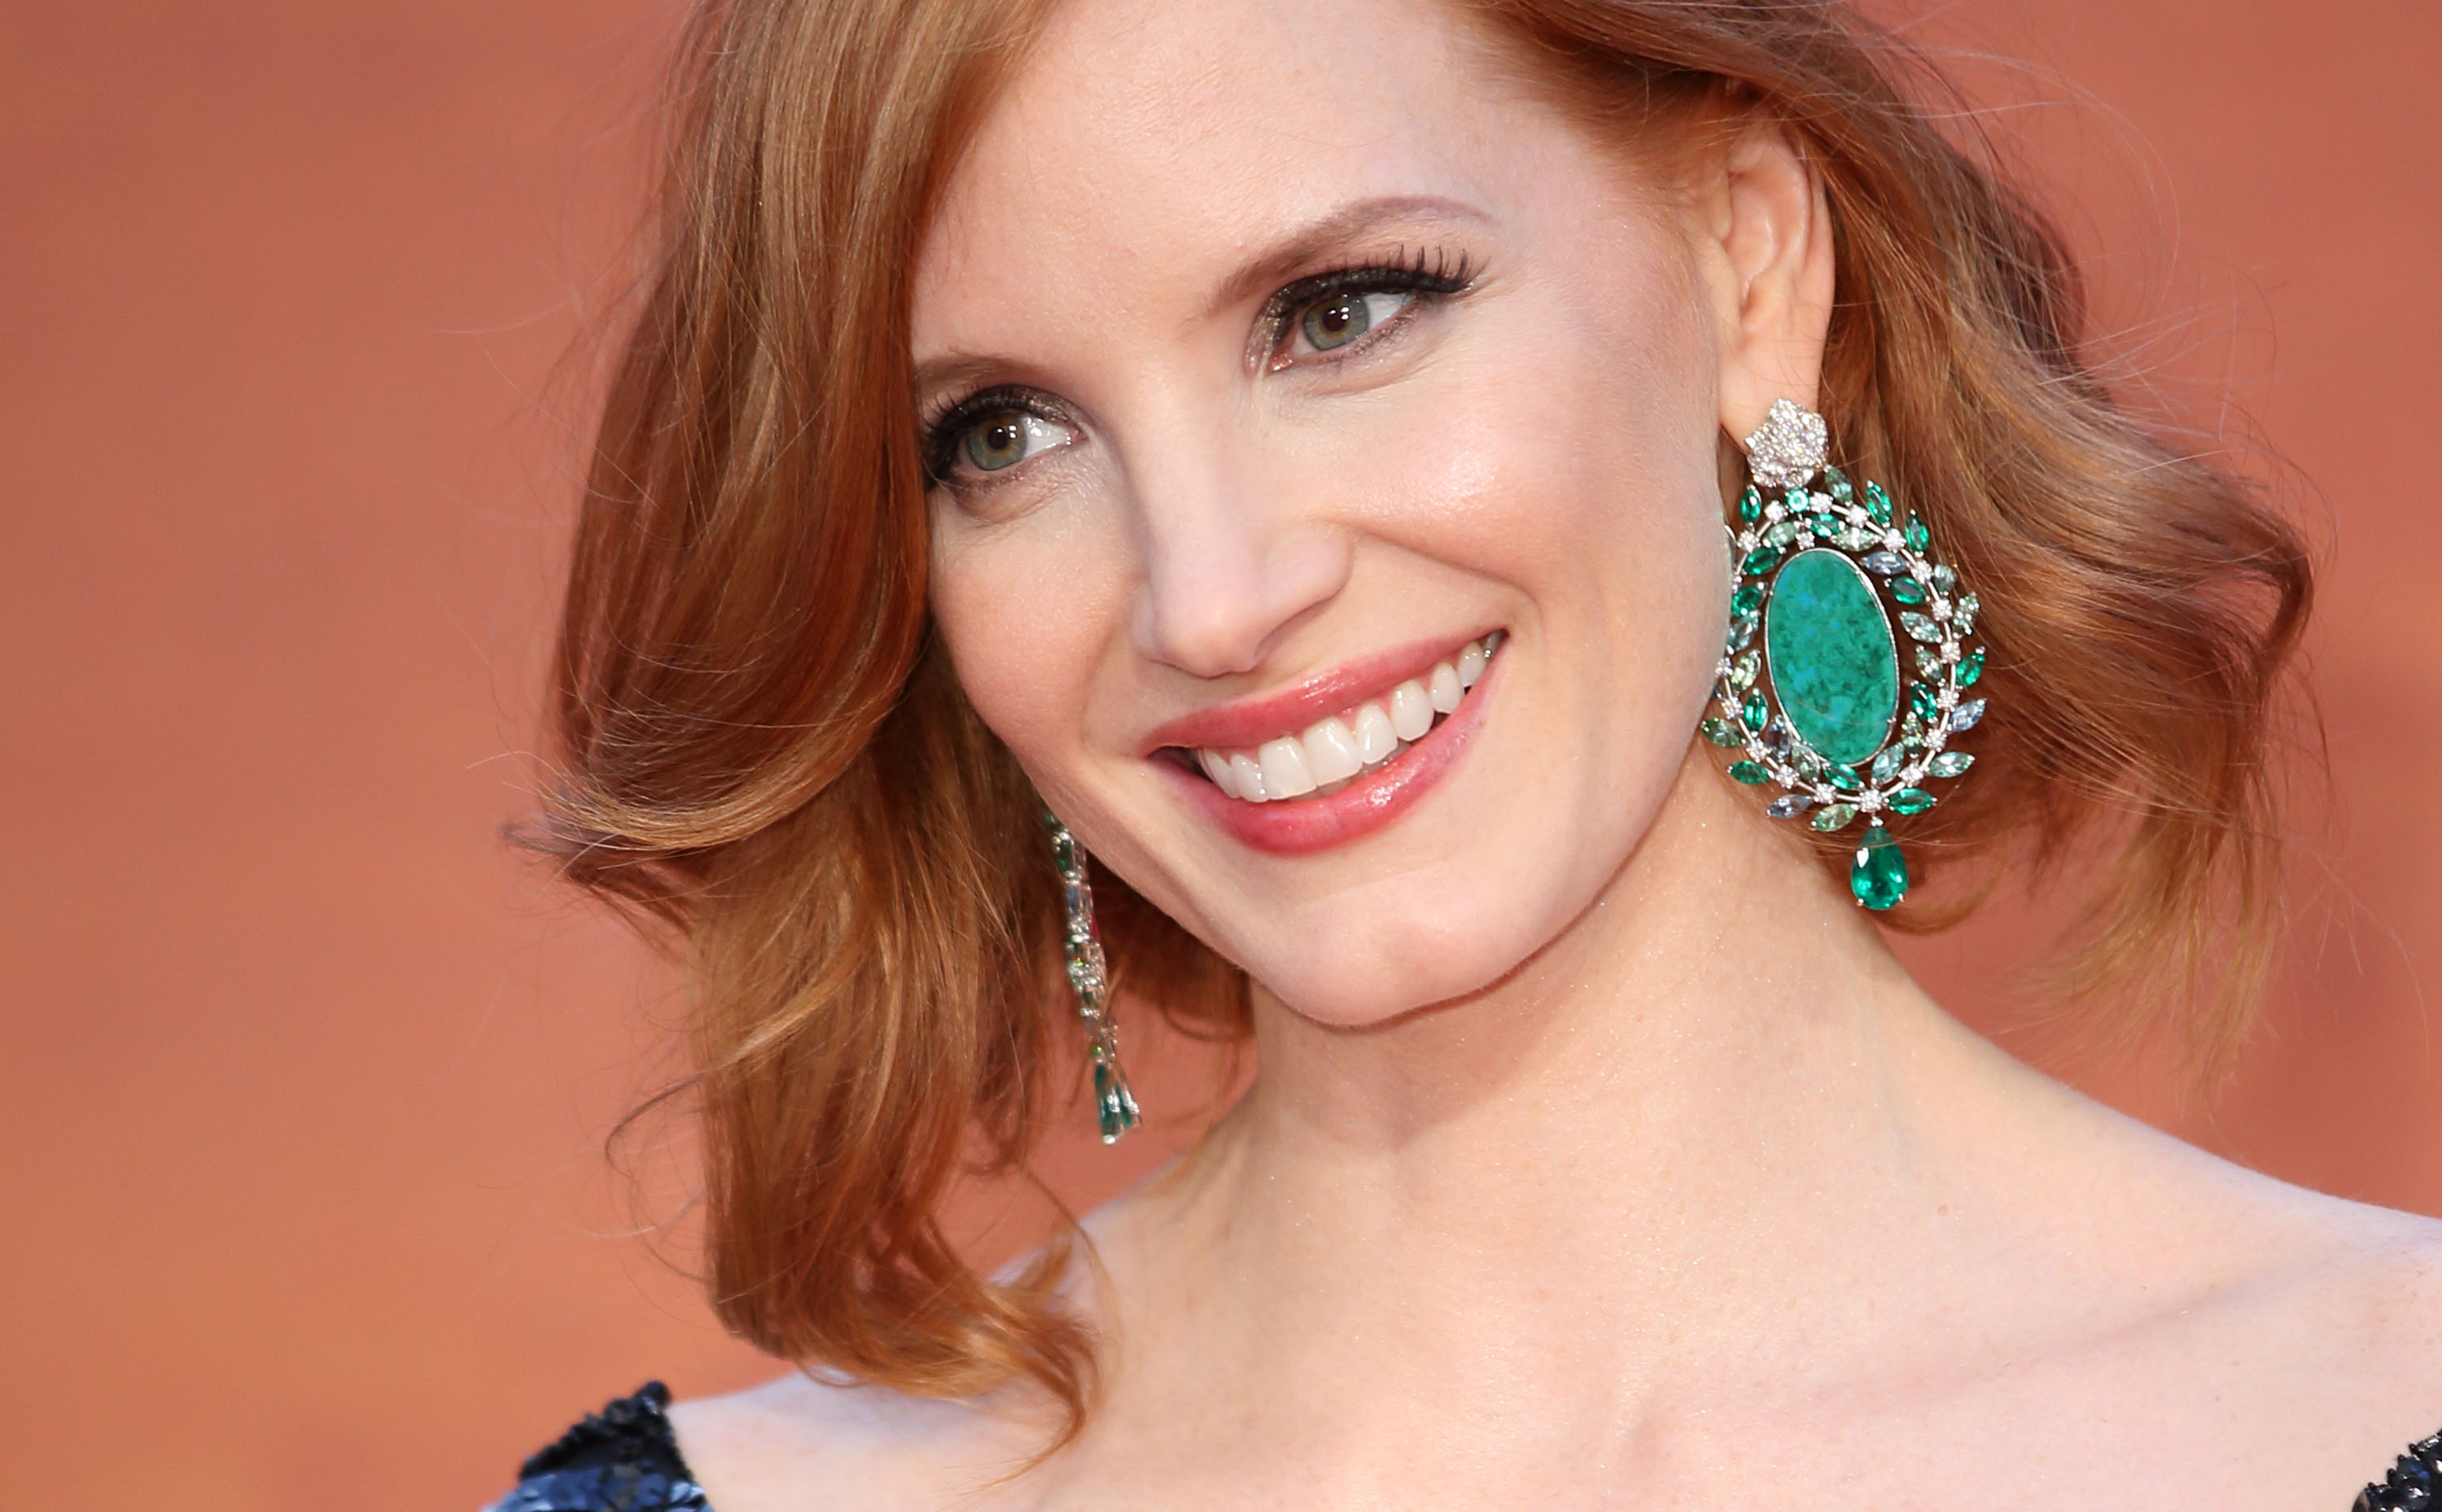 Jessica Chastain attends the European premiere of  The Martian  at Odeon Leicester Square on Sept. 24, 2015 in London.